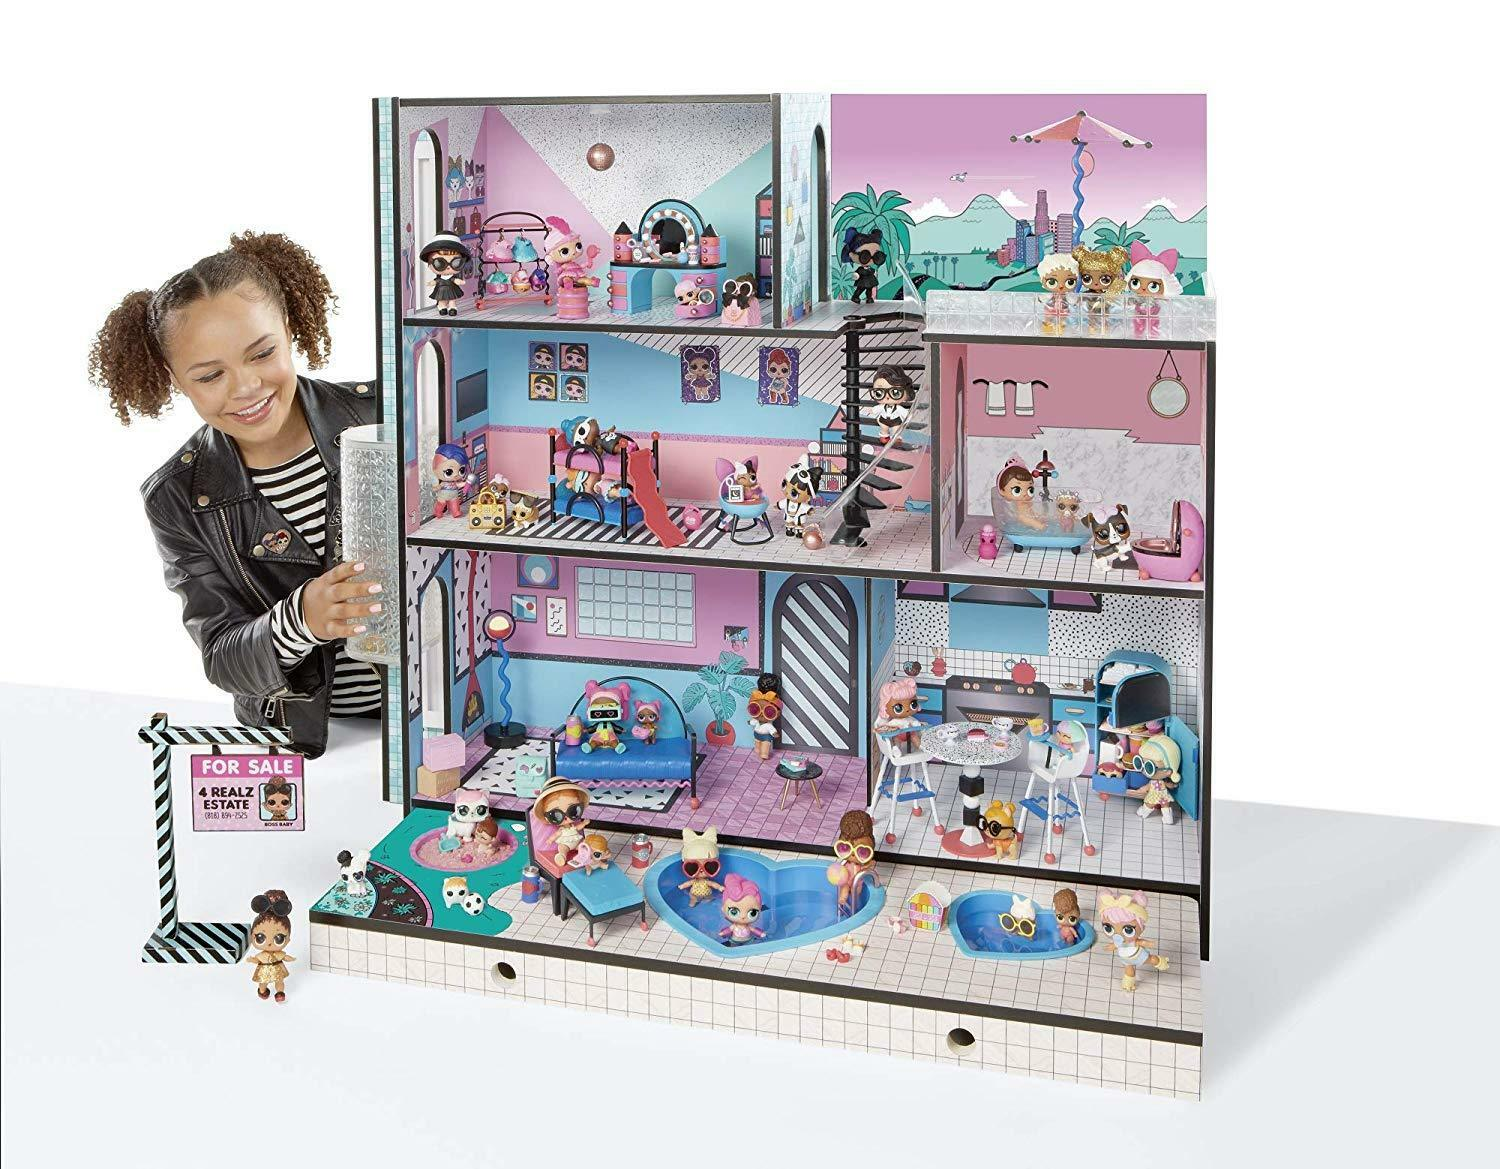 Lol Doll House Surprise Interactive Sounds Lights L.O.L Large Fun Toy For Girls